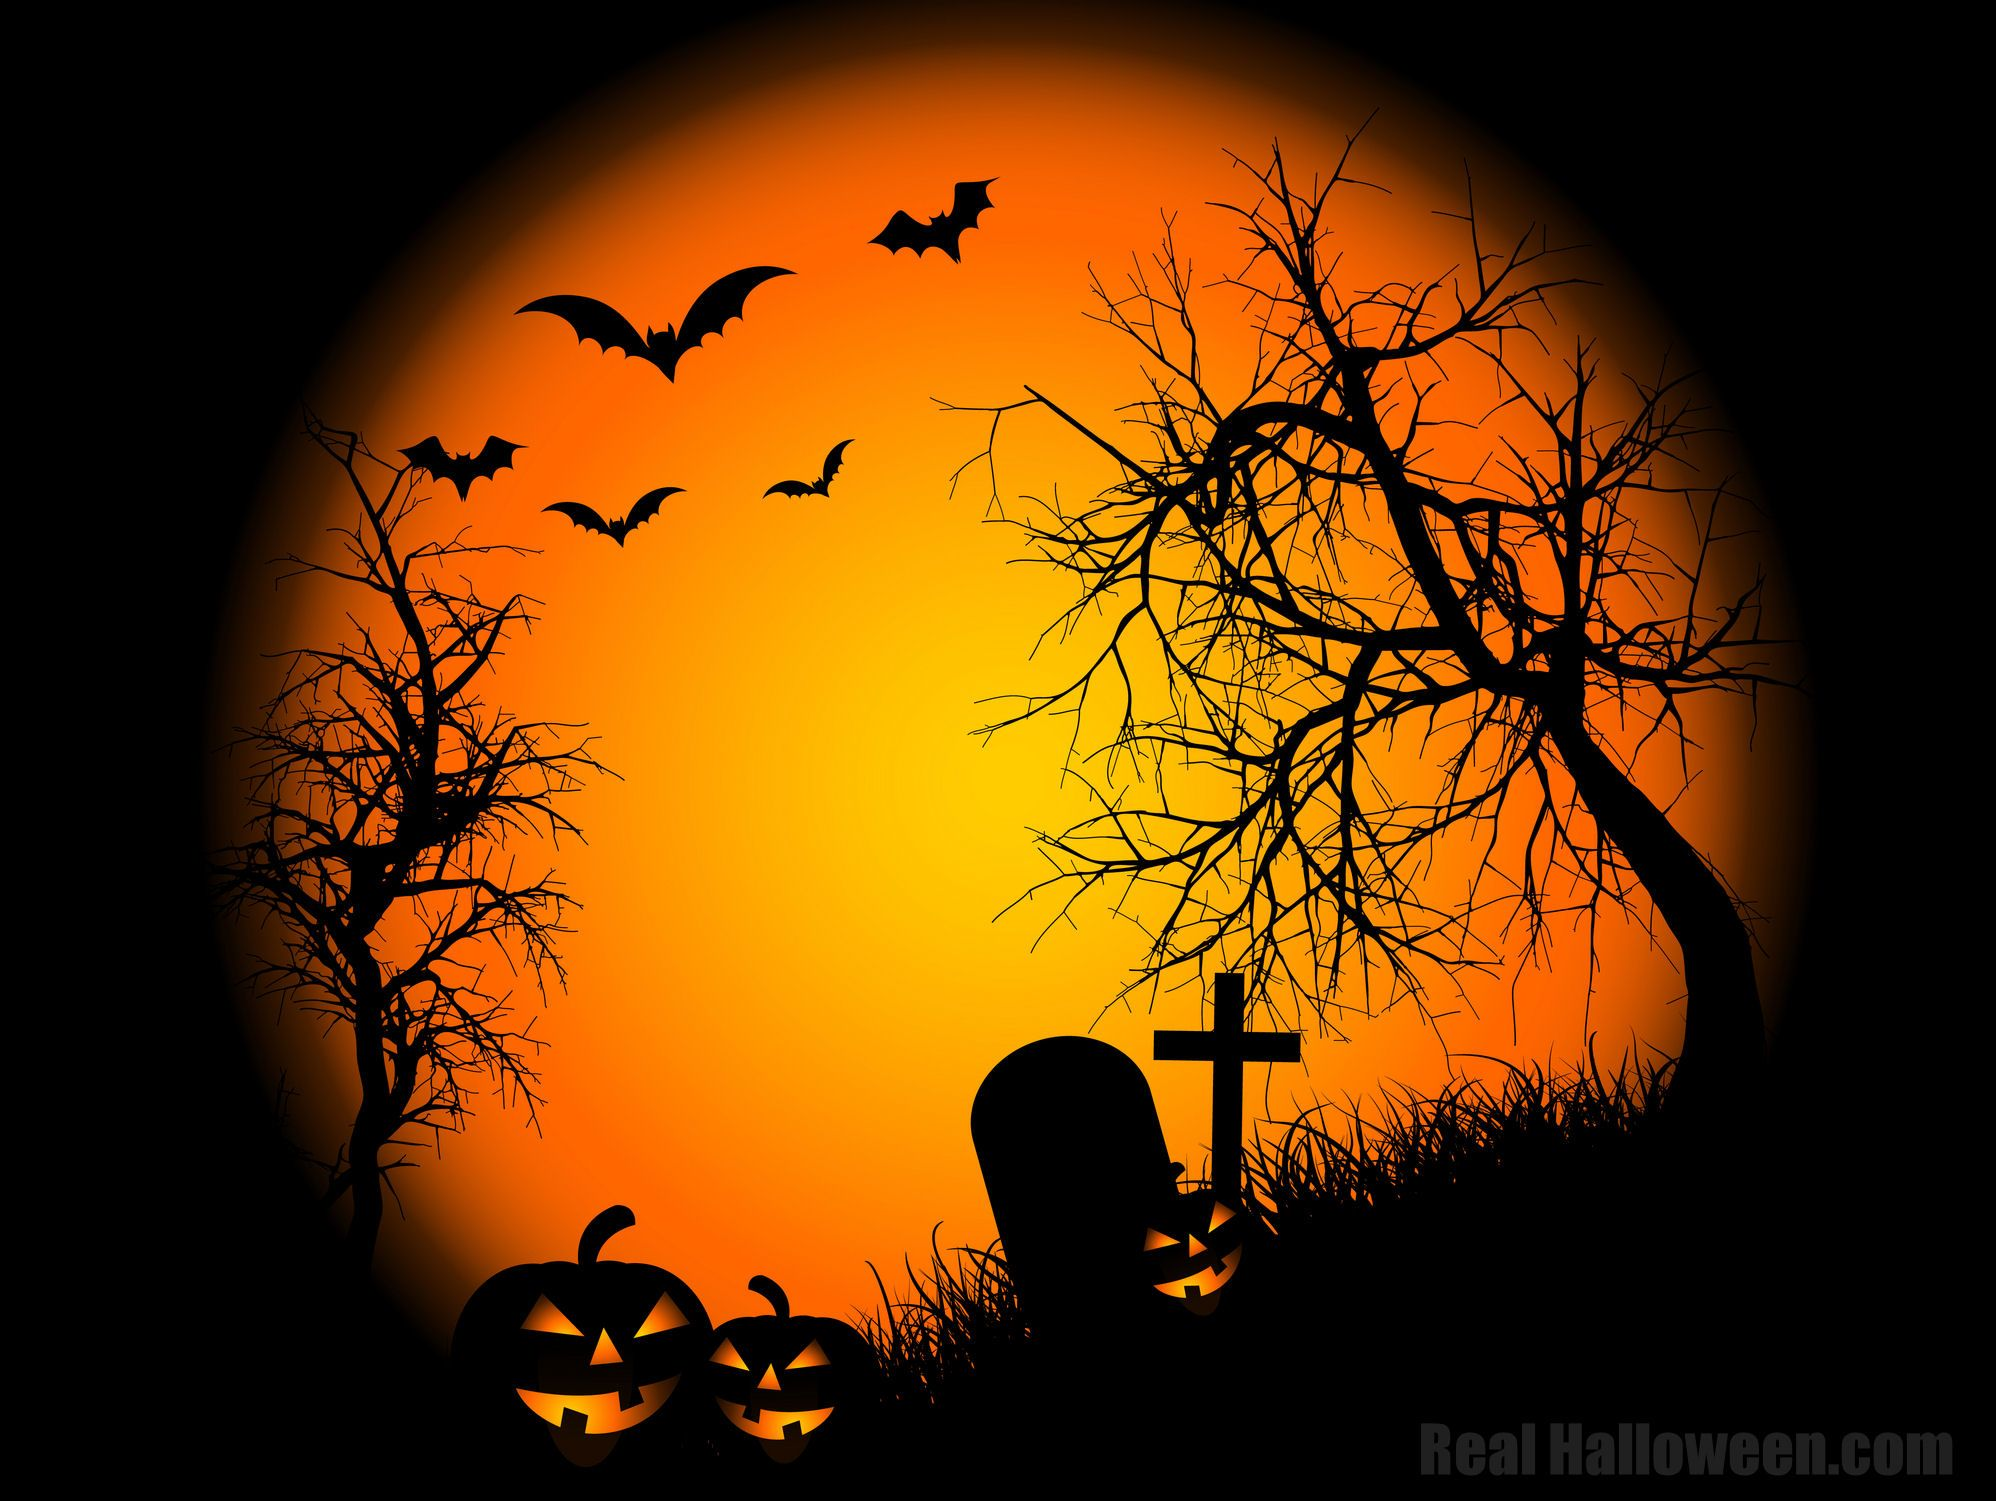 Halloween Wallpapers Free Free Halloween Wallpaper Halloween Wallpaper Backgrounds Halloween Wallpaper